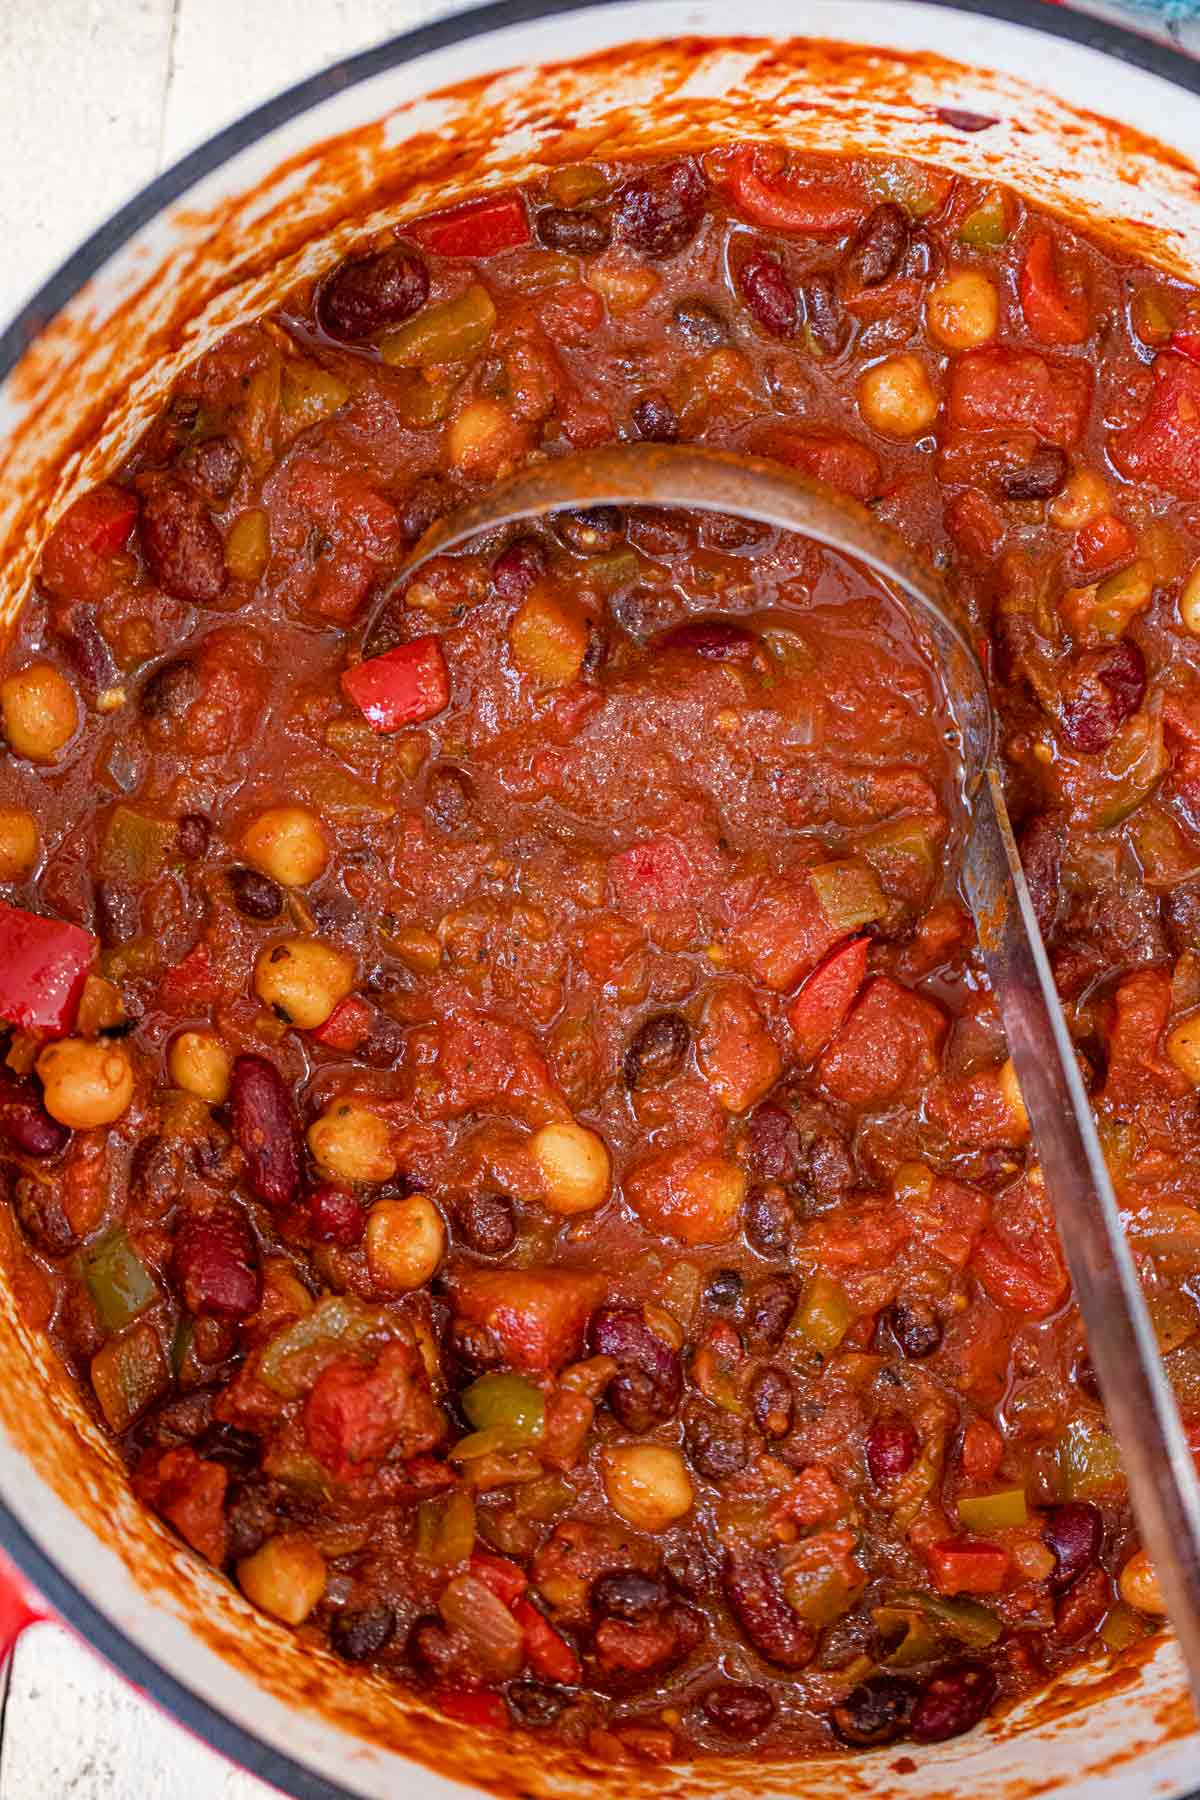 Easy Healthy Vegetarian Chili Recipe 3 Bean Cooking Made Healthy